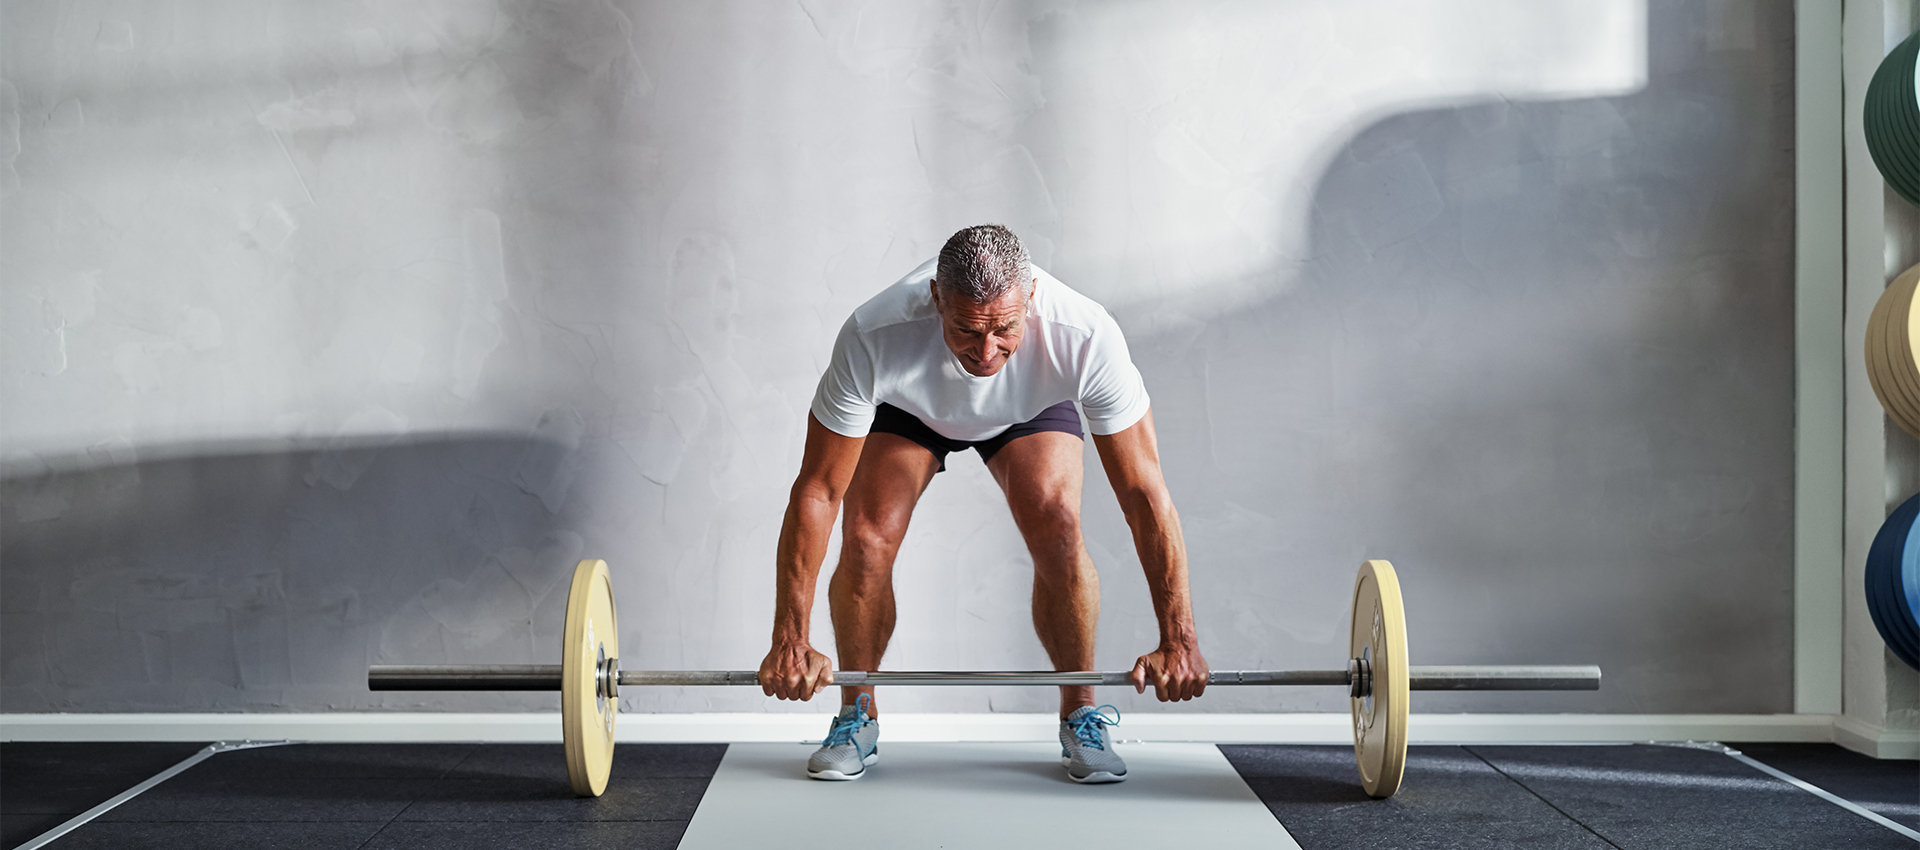 personal trainer lifting weights Endless Life Force